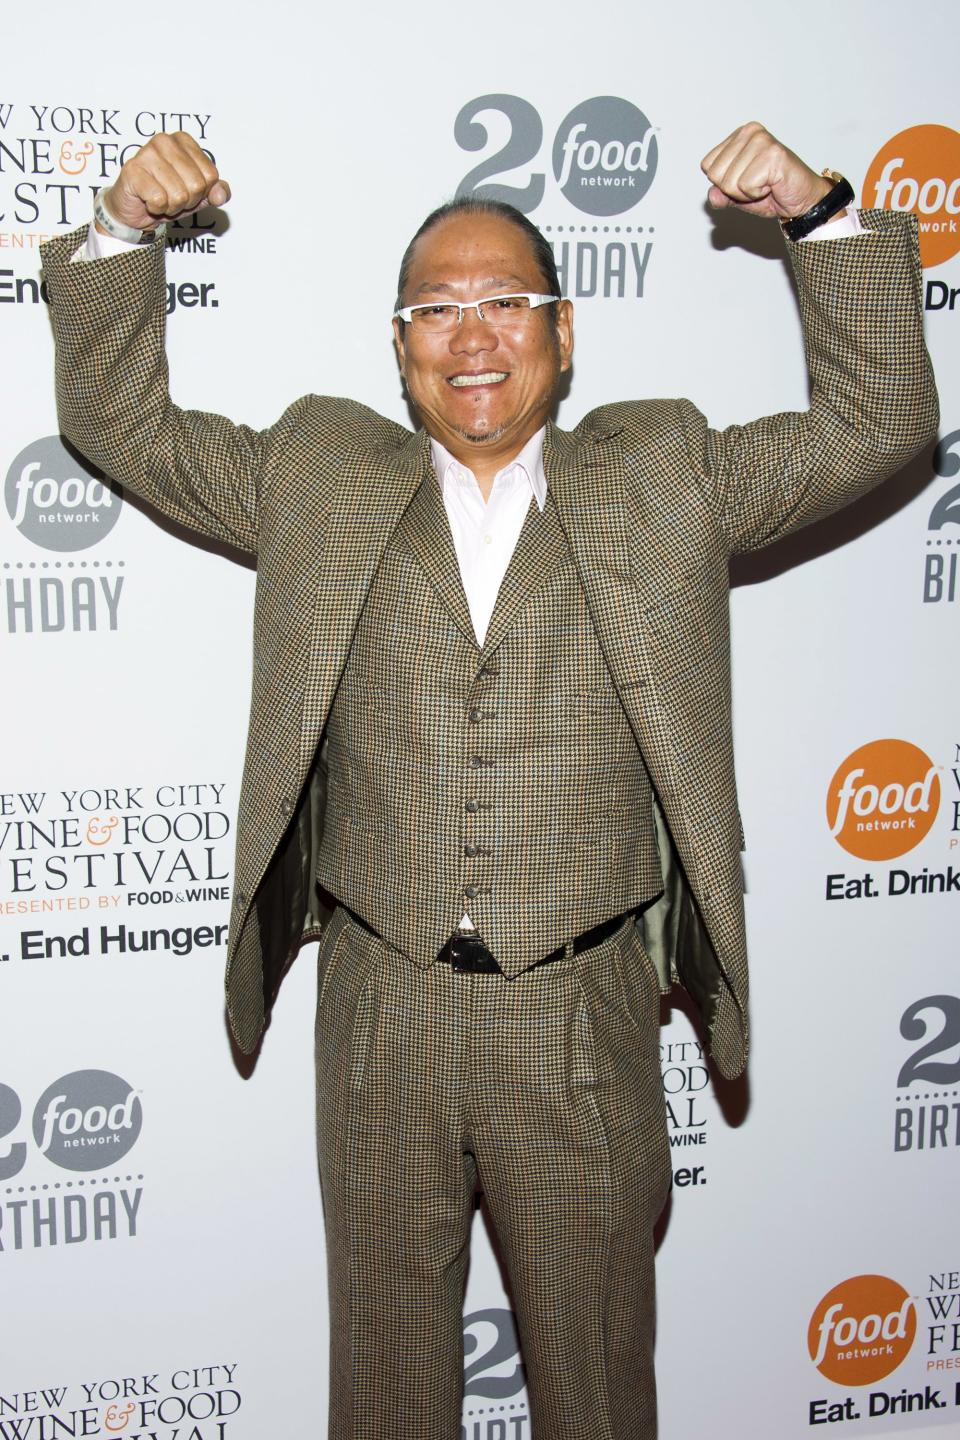 Masaharu Morimoto attends the Food Network's 20th birthday party on Thursday, Oct. 17, 2013, in New York. (Photo by Charles Sykes/Invision/AP)